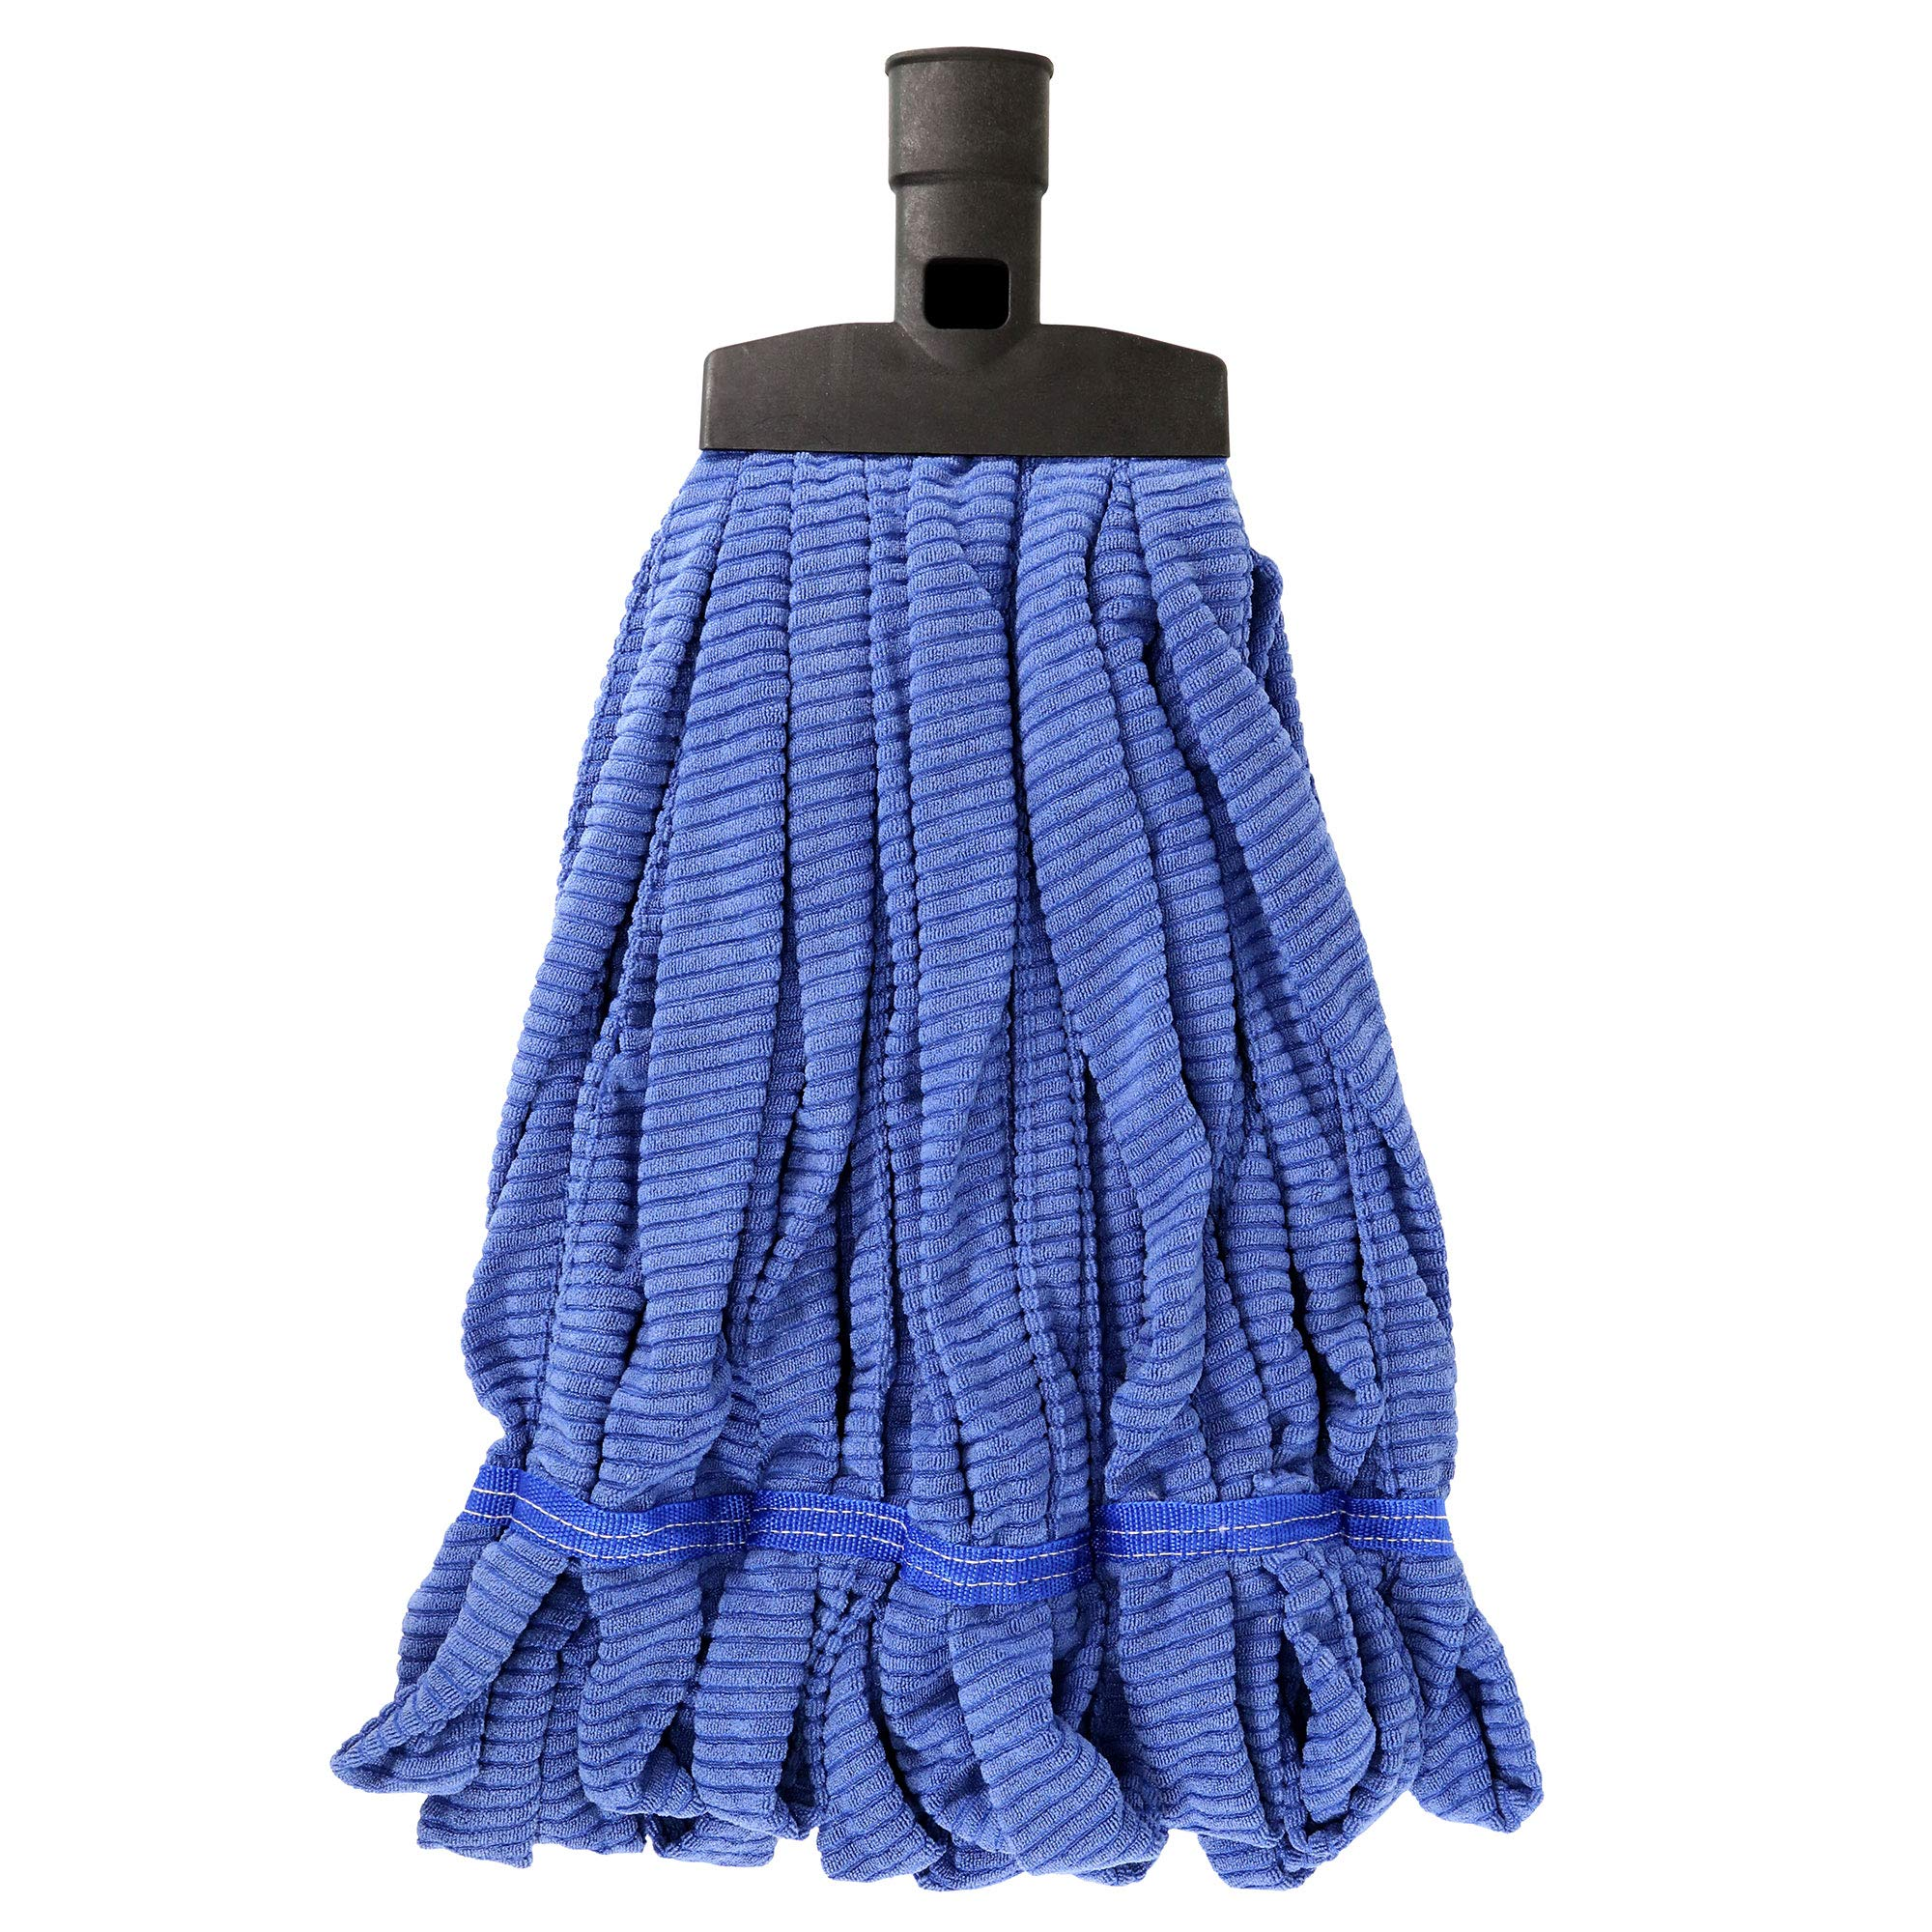 SWOPT Microfiber Mop Head - Microfiber Mop Head for Use on Wood, Laminate and Tile Floors, Lint Free Cleaning - Interchangeable with Other SWOPT Products for More Efficient Cleaning and Storage, Head Only, Handle Sold Separately, 5111C6